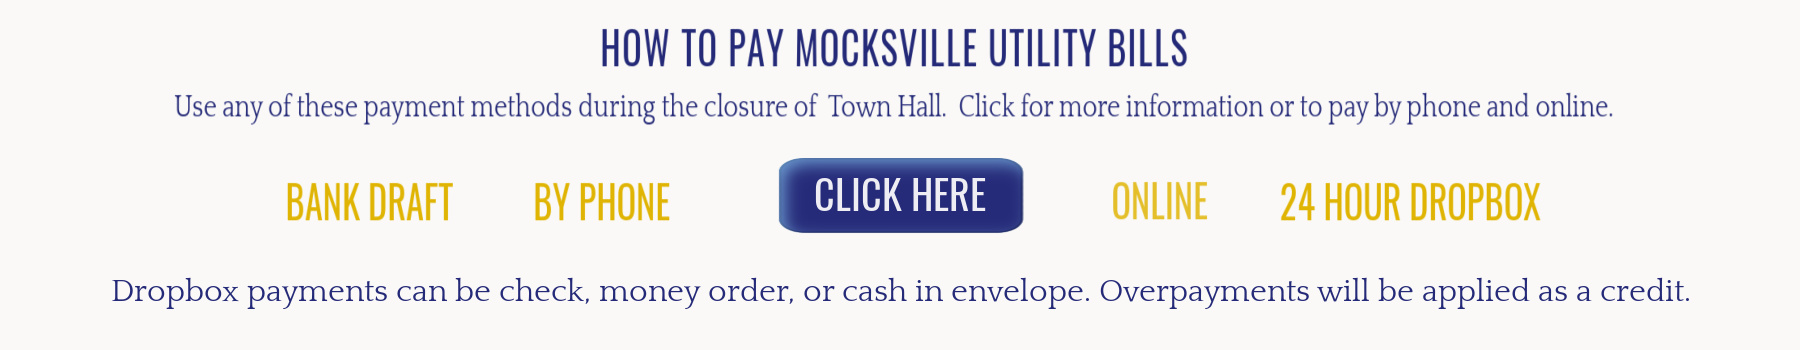 During the Town Hall Closure to the Public Pay your Mocksville Utility Bill Payments by any of the following methods: